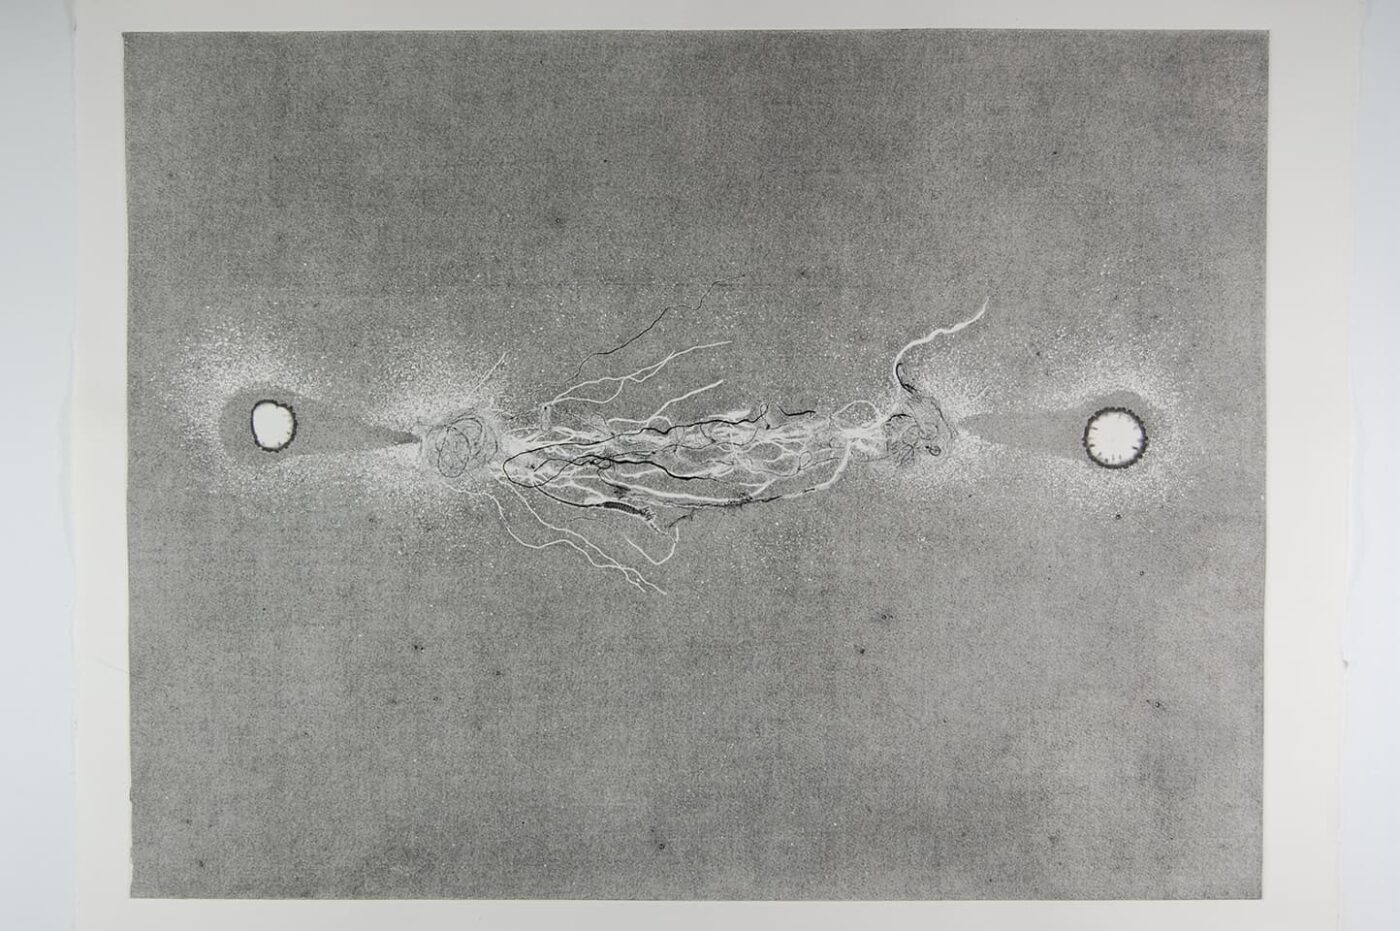 <strong>Out of Body 1.2</strong>, Susan Aldworth, monoprint, 56 x 76 cms, 2009.